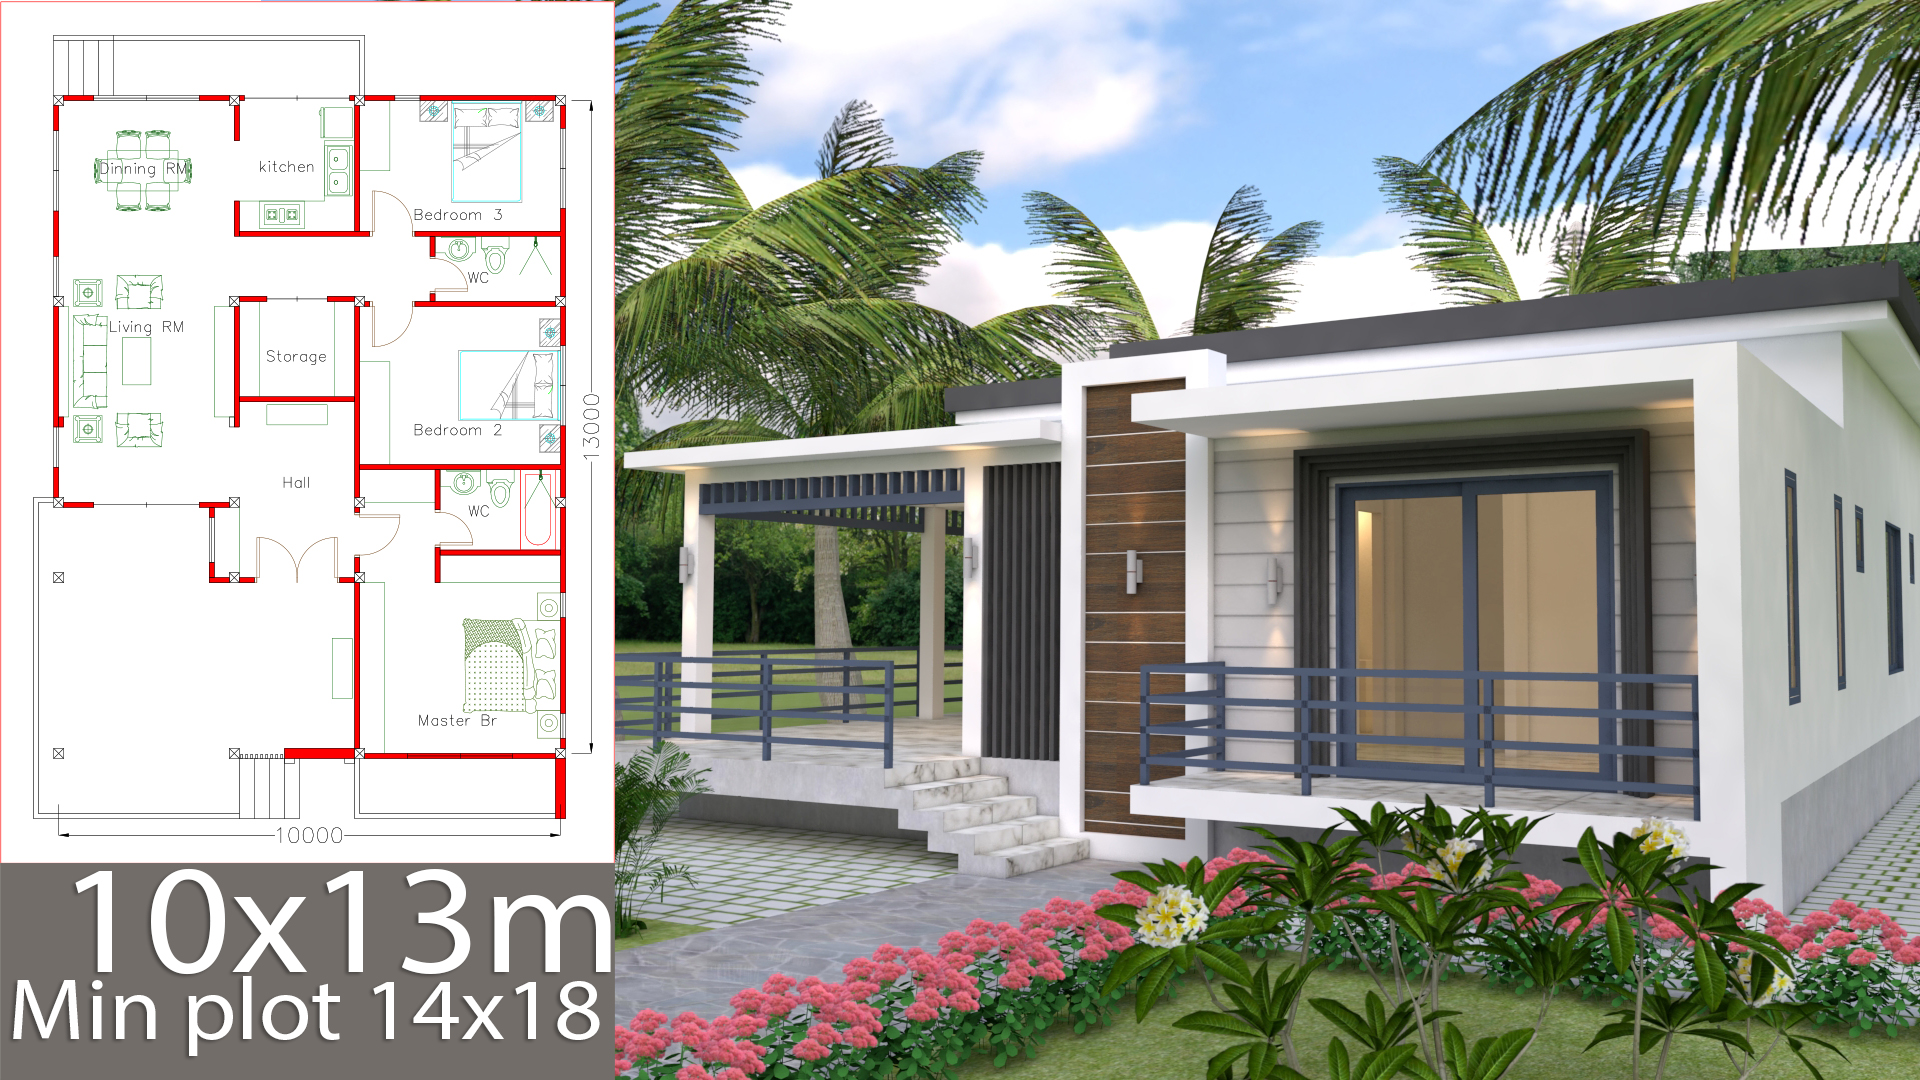 Sketchup Home Design Plan 10x13m with 3 Bedrooms - Get Modern 3 Bedroom House Floor Plans  Gif